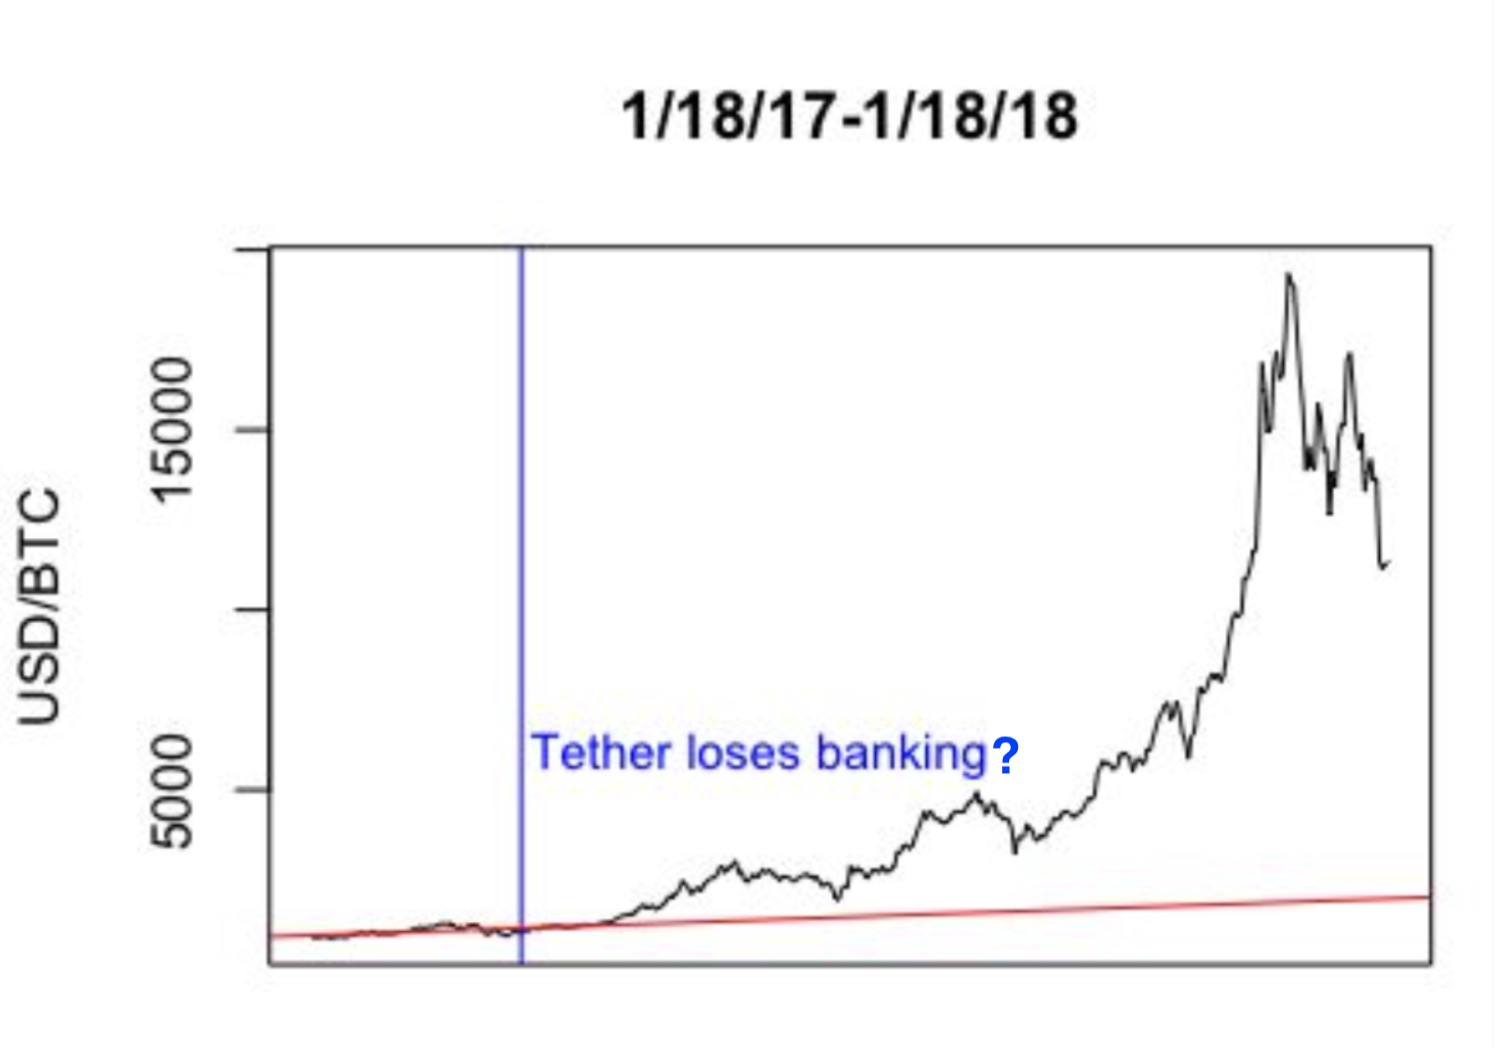 Quantifying the Effect of TetherDiscover BitcoinDiscover Bitcoin